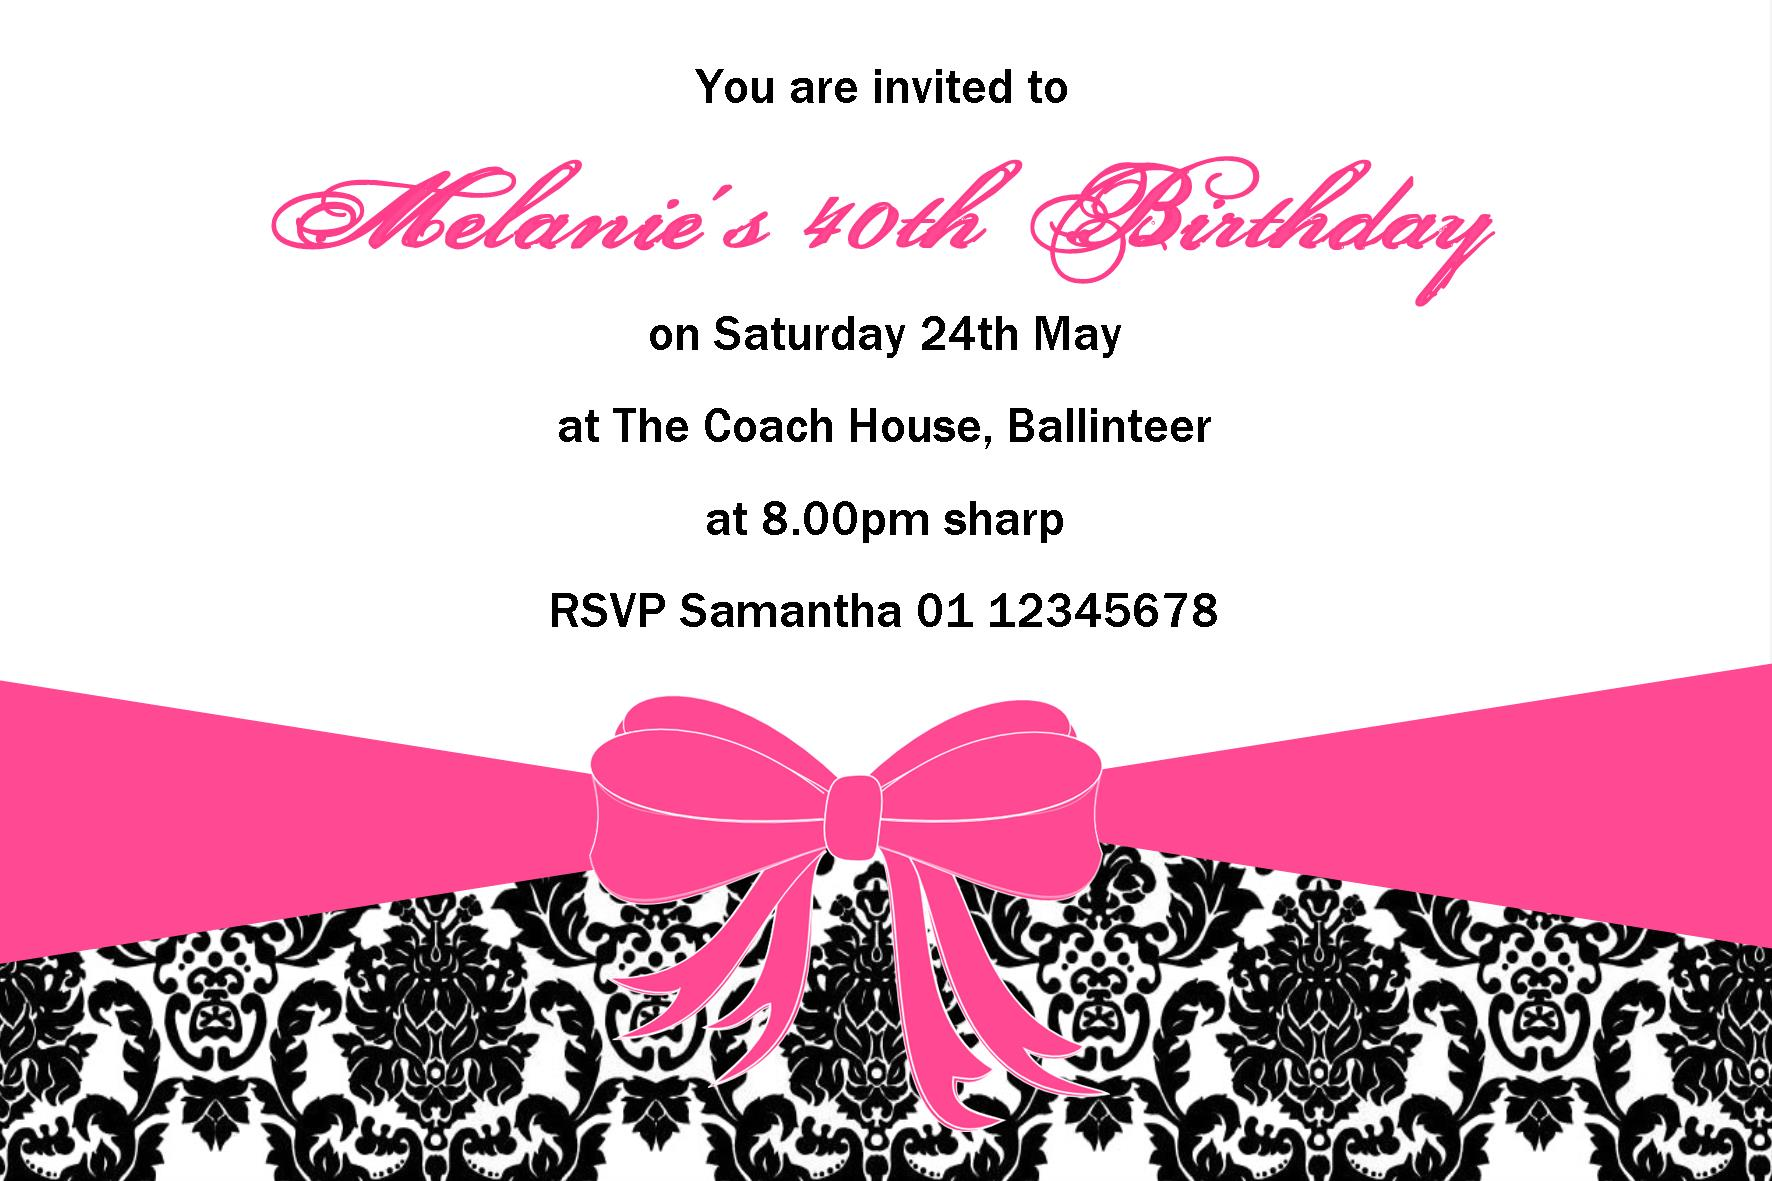 Personalised Birthday Invitation Design 1 2203 P